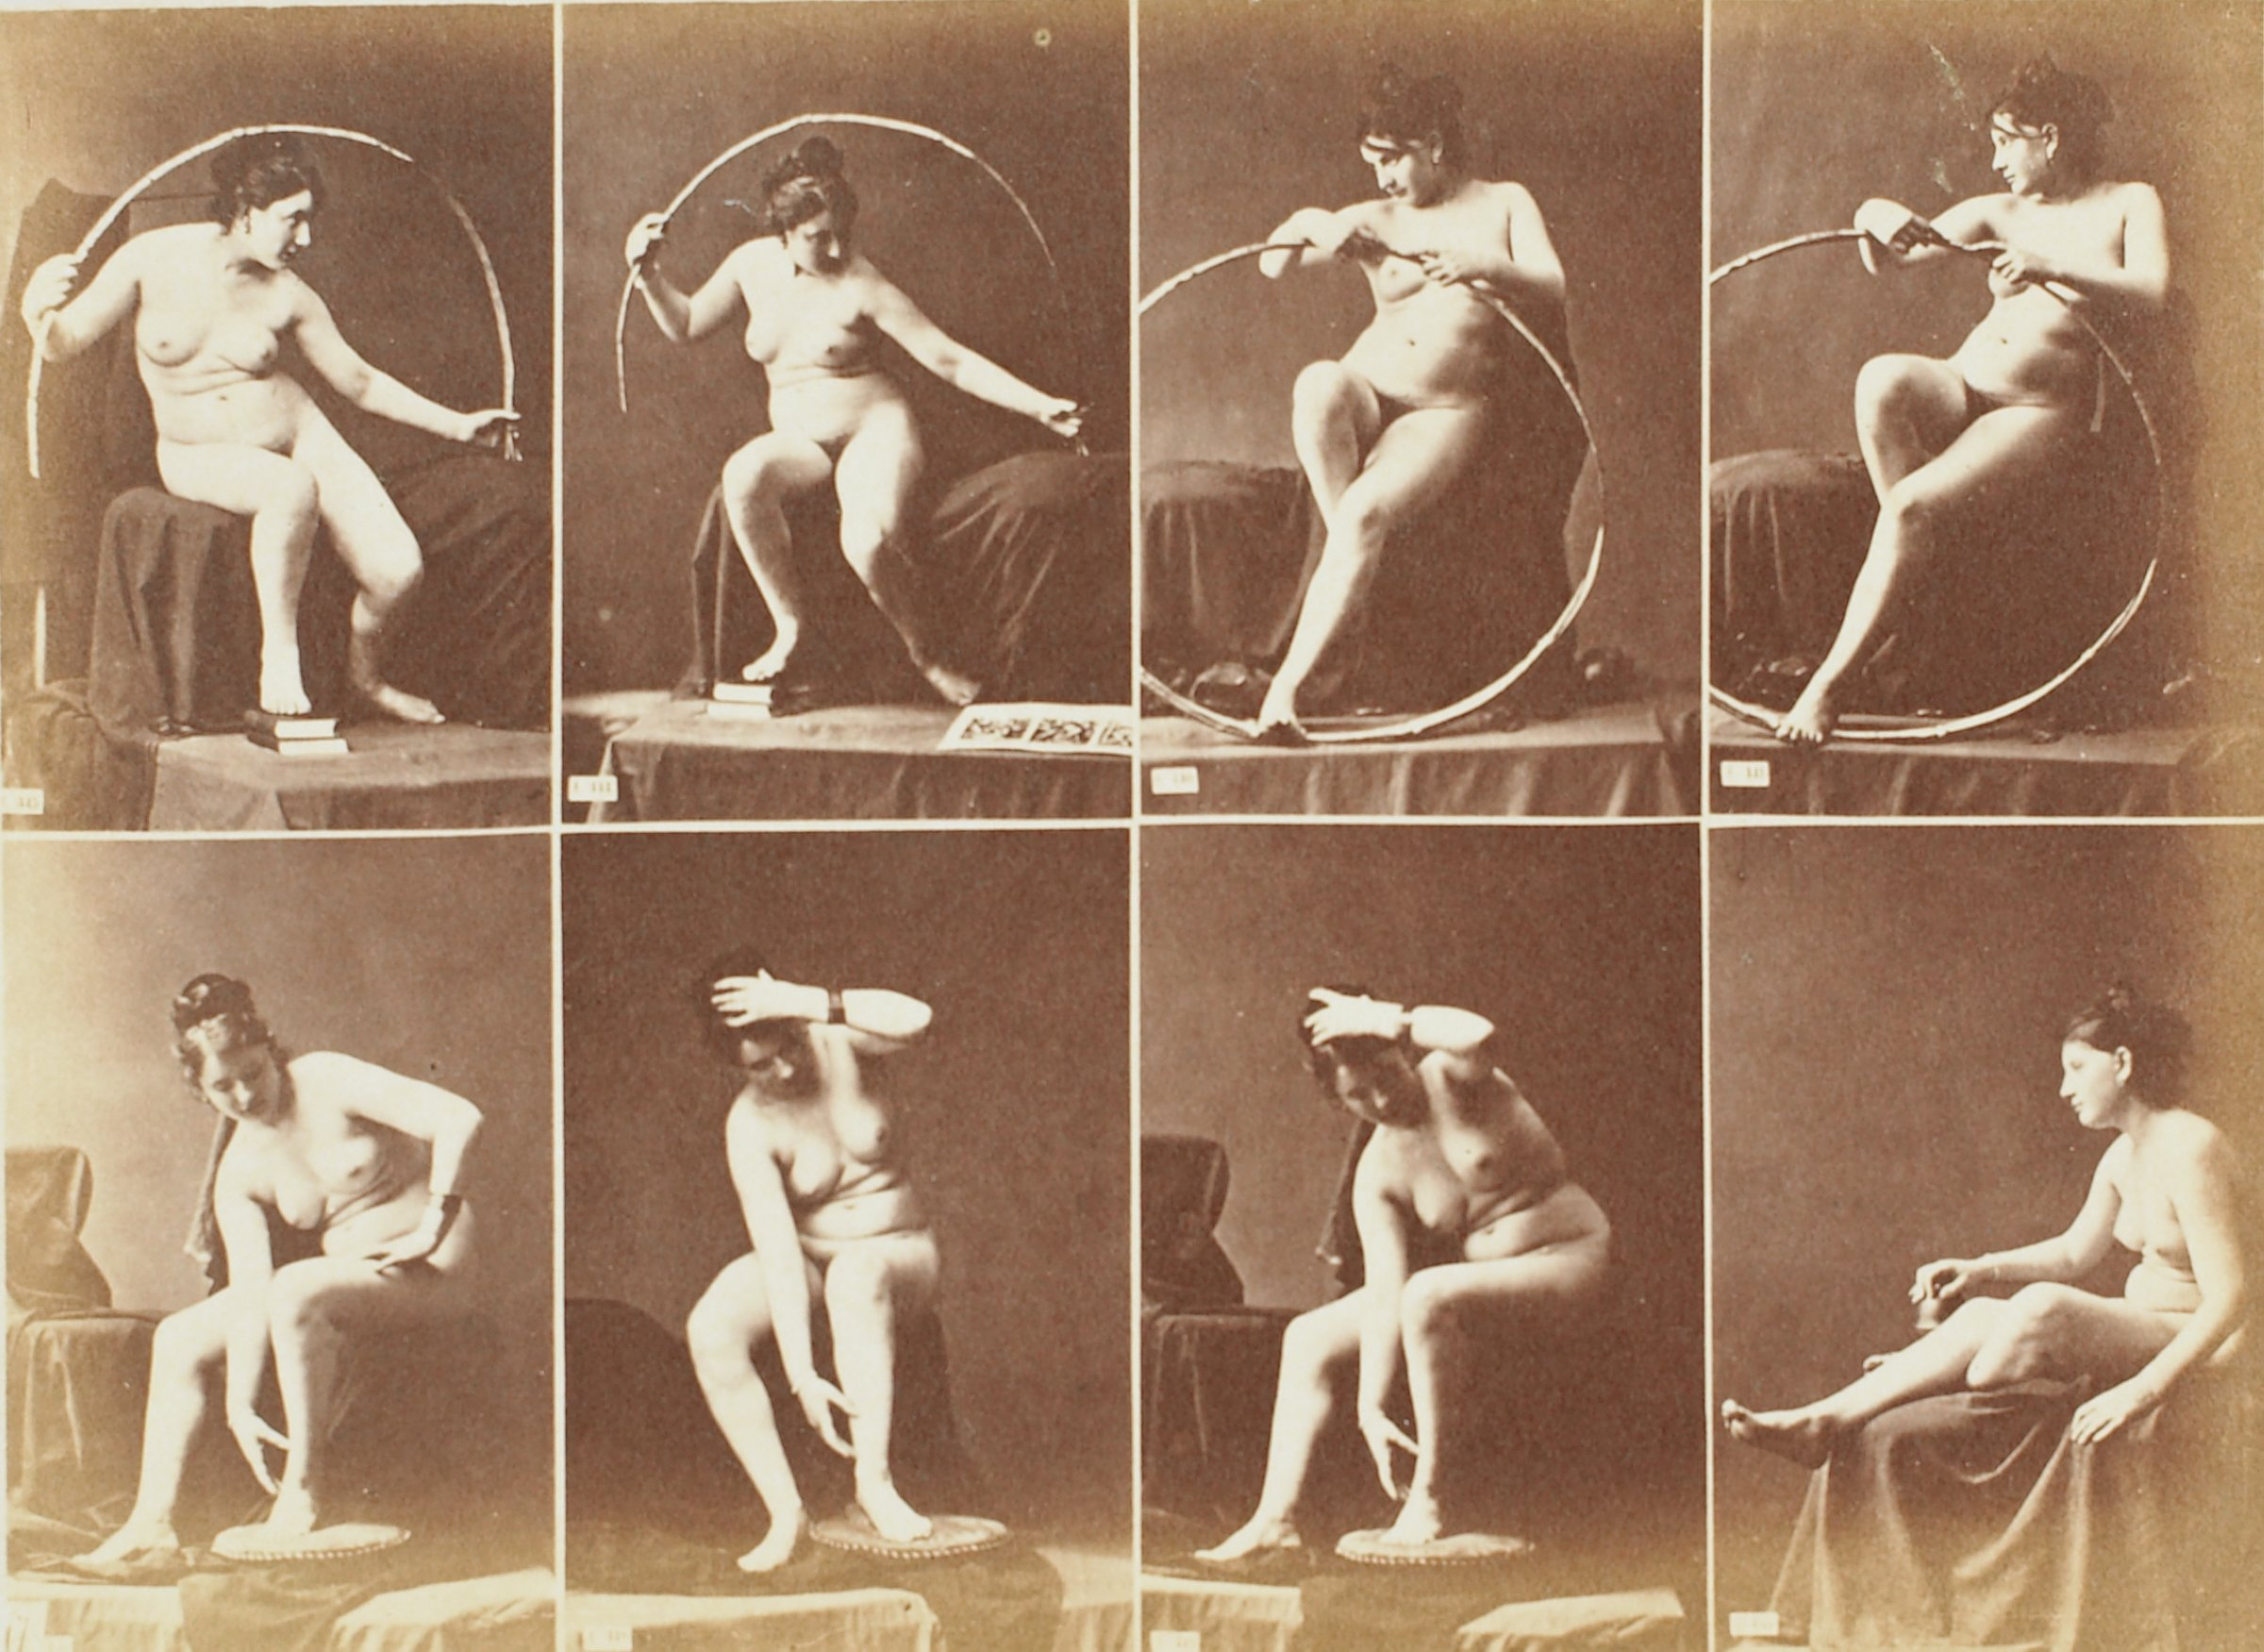 "Albumen print with eight images of a nude woman in varied poses mounted onto blue paper with printed text ""A.CALAVAS Éditeur, — 68, Rue de Lafayette, PARIS."" Paper is mounted to 2-ply non-acidic mat board. Appears to have been removed from a book binding."